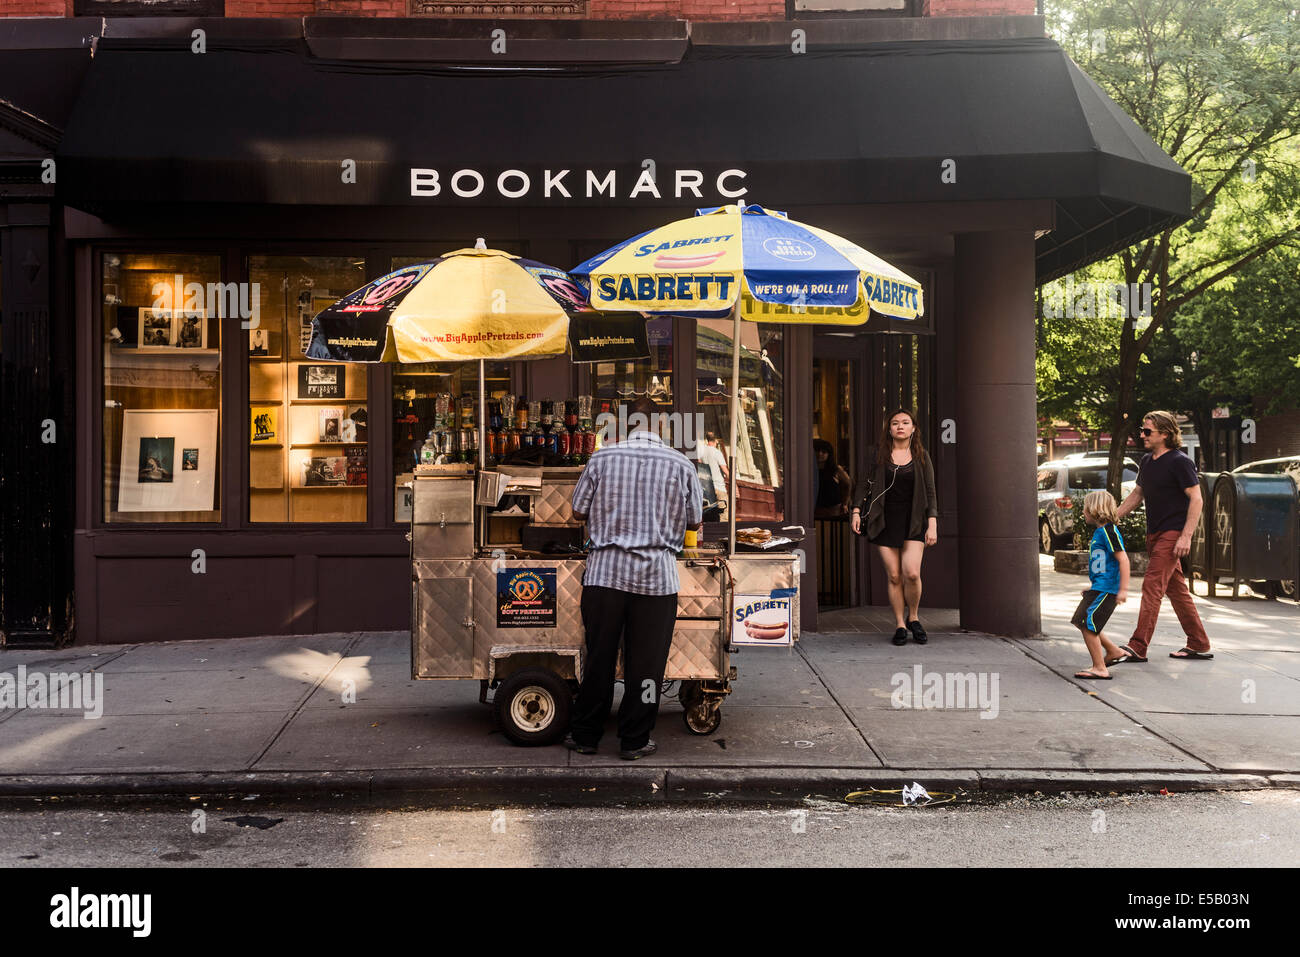 New York, NY - 25 July 2014 - Marc Jacobs Bookstore on Bleecker Street - Stock Image